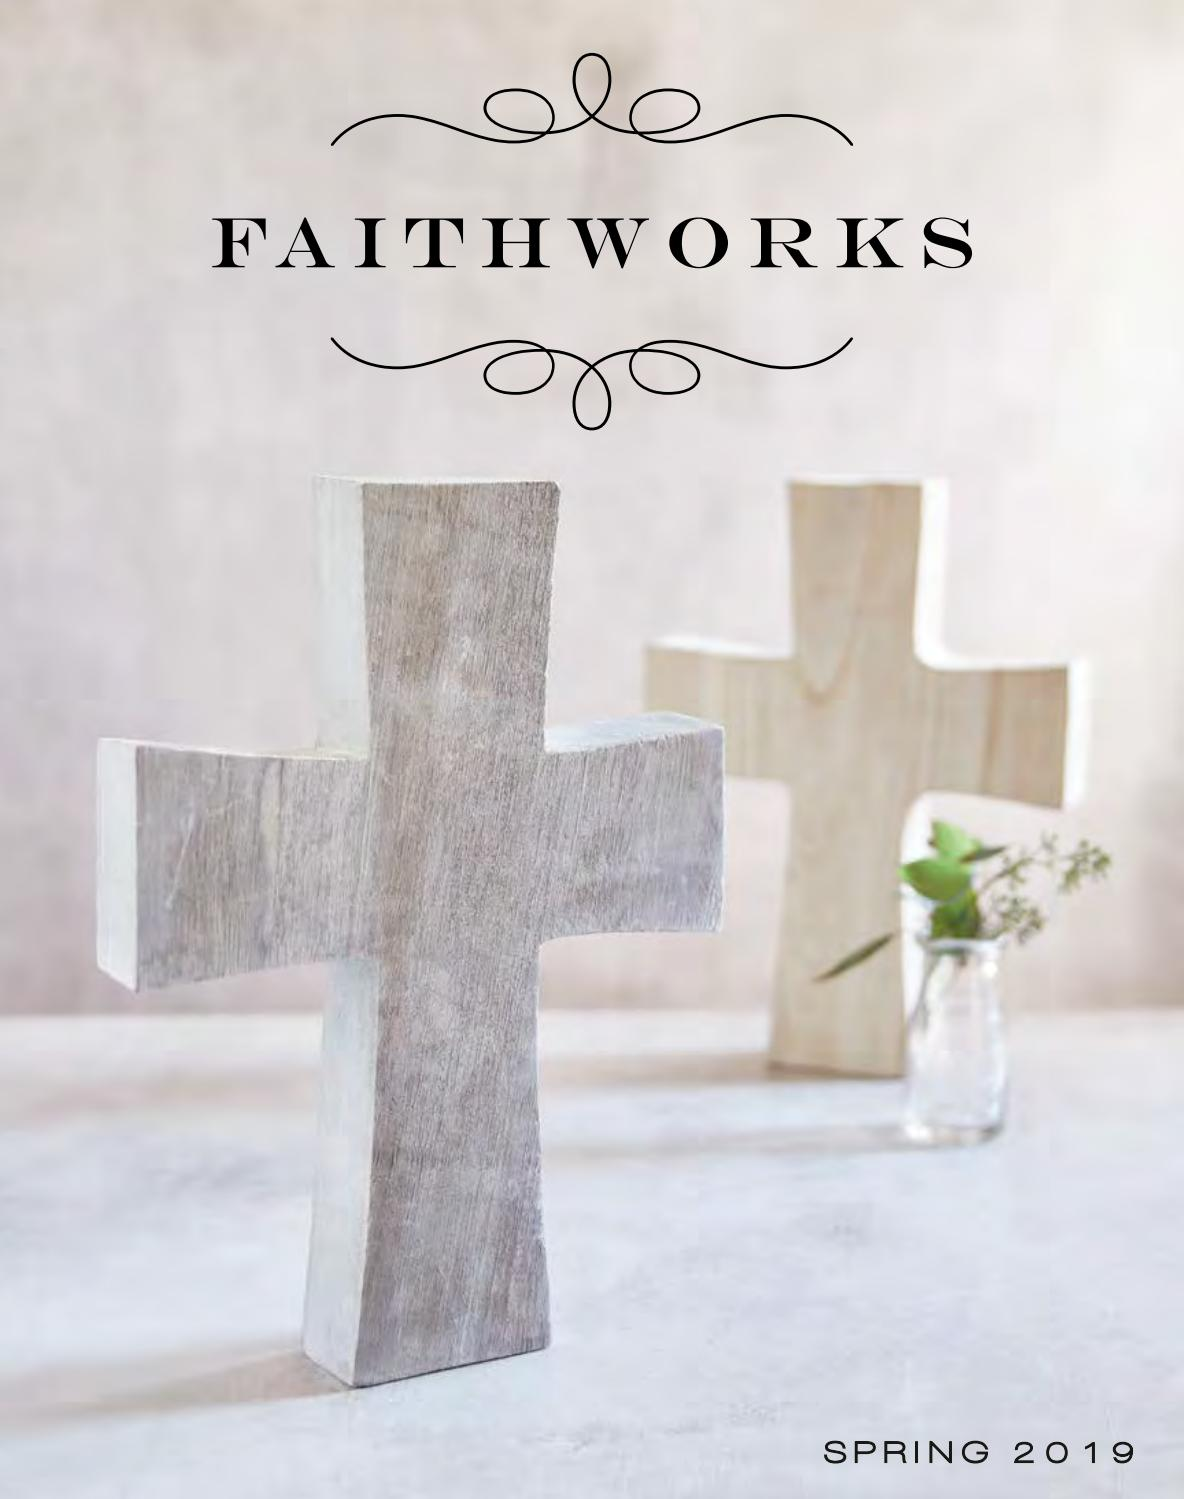 Faithworks Spring 2019 By Just Got 2 Have It Issuu